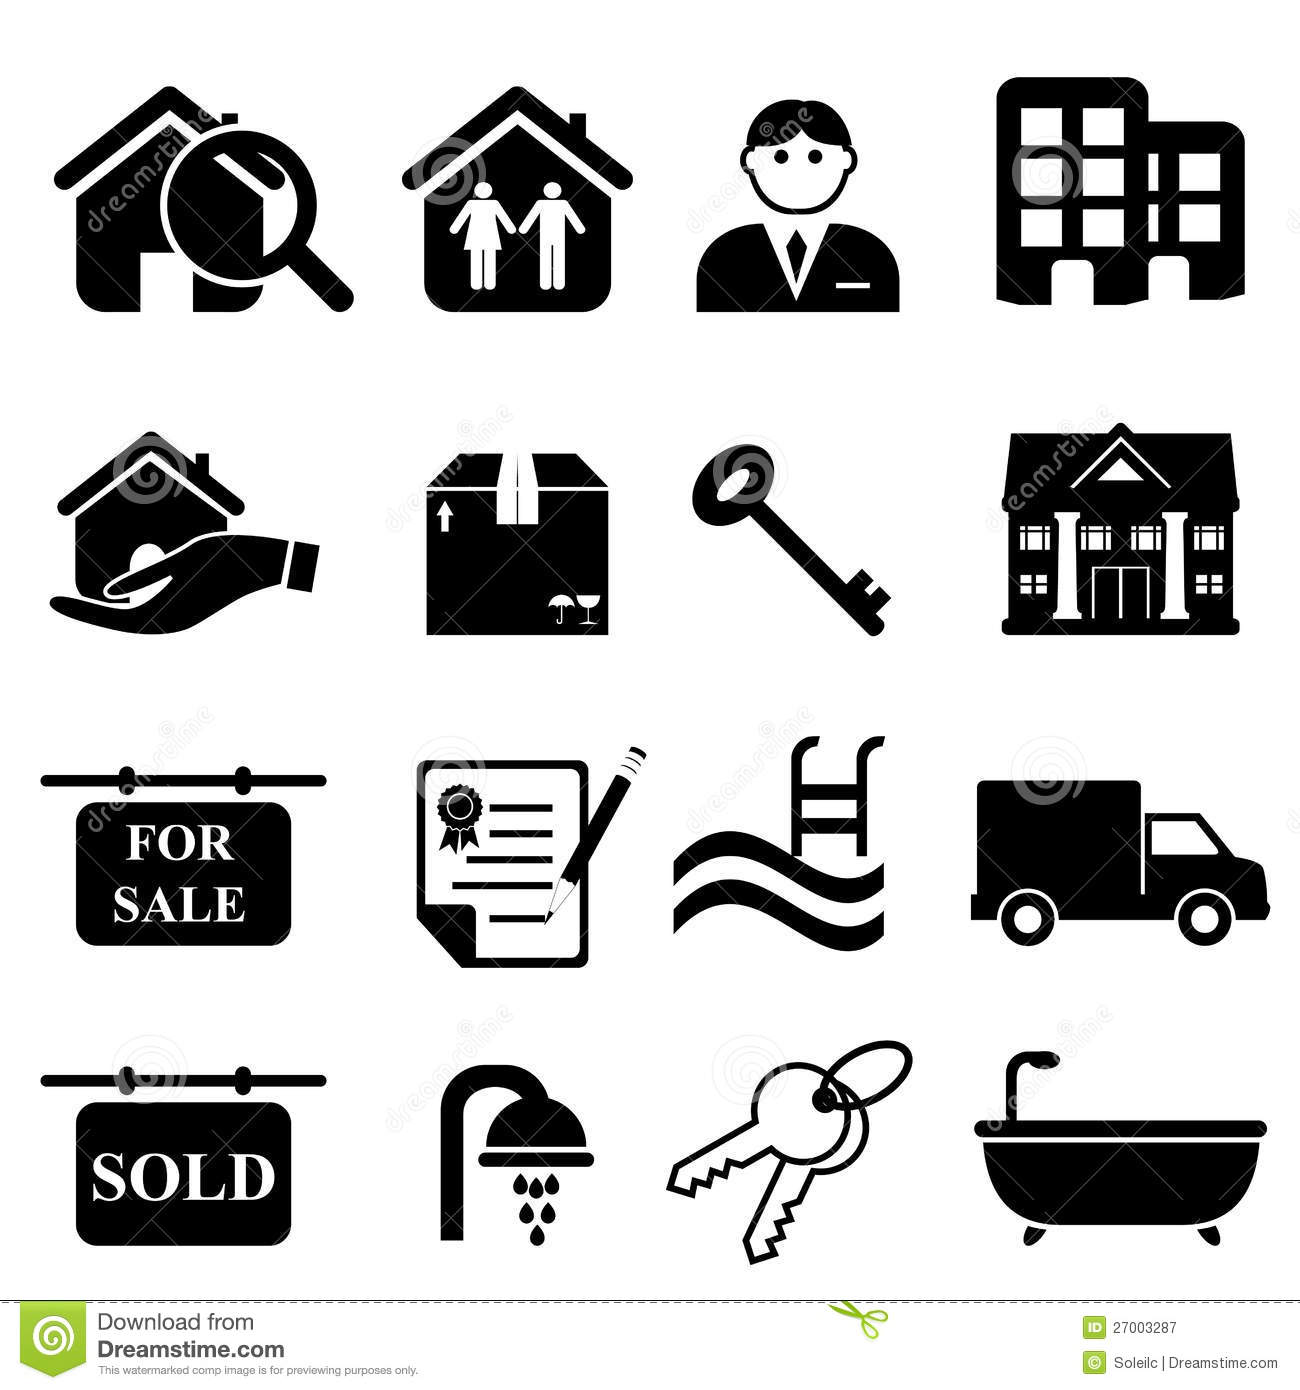 Royalty Free Stock Photography Real Estate Icons Image27003287 on skeleton key